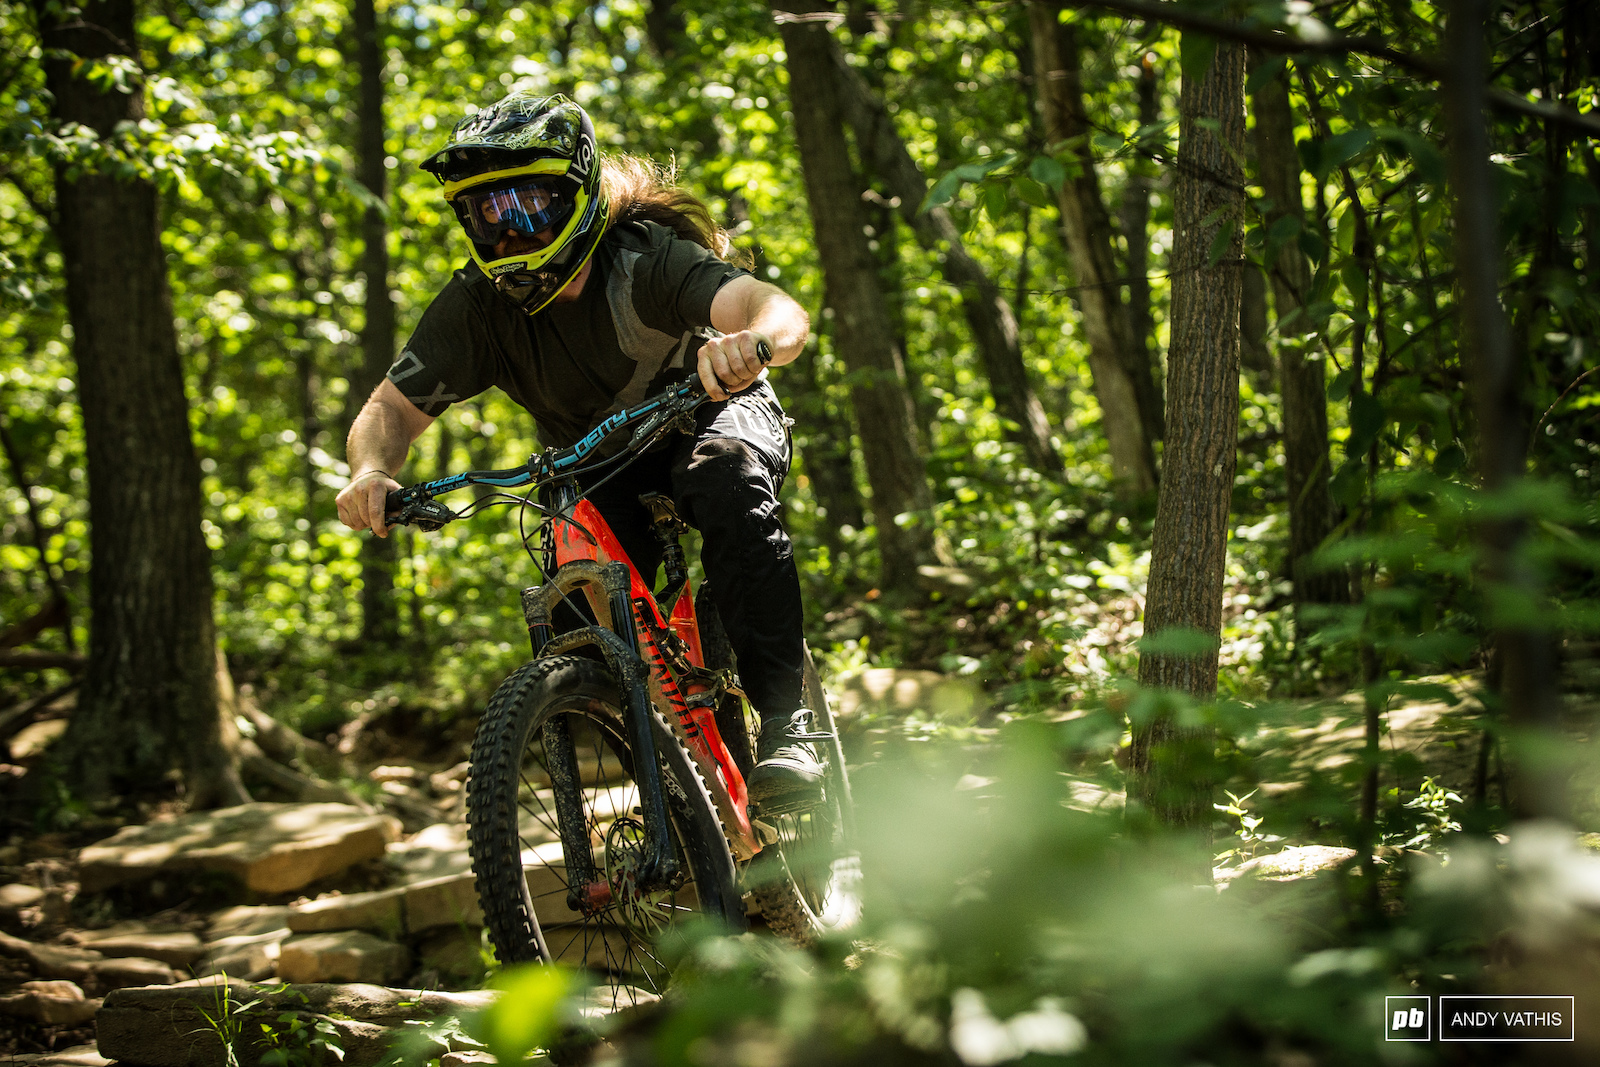 Jeff Anderson is one of the main trail crew at Mountain Creek.